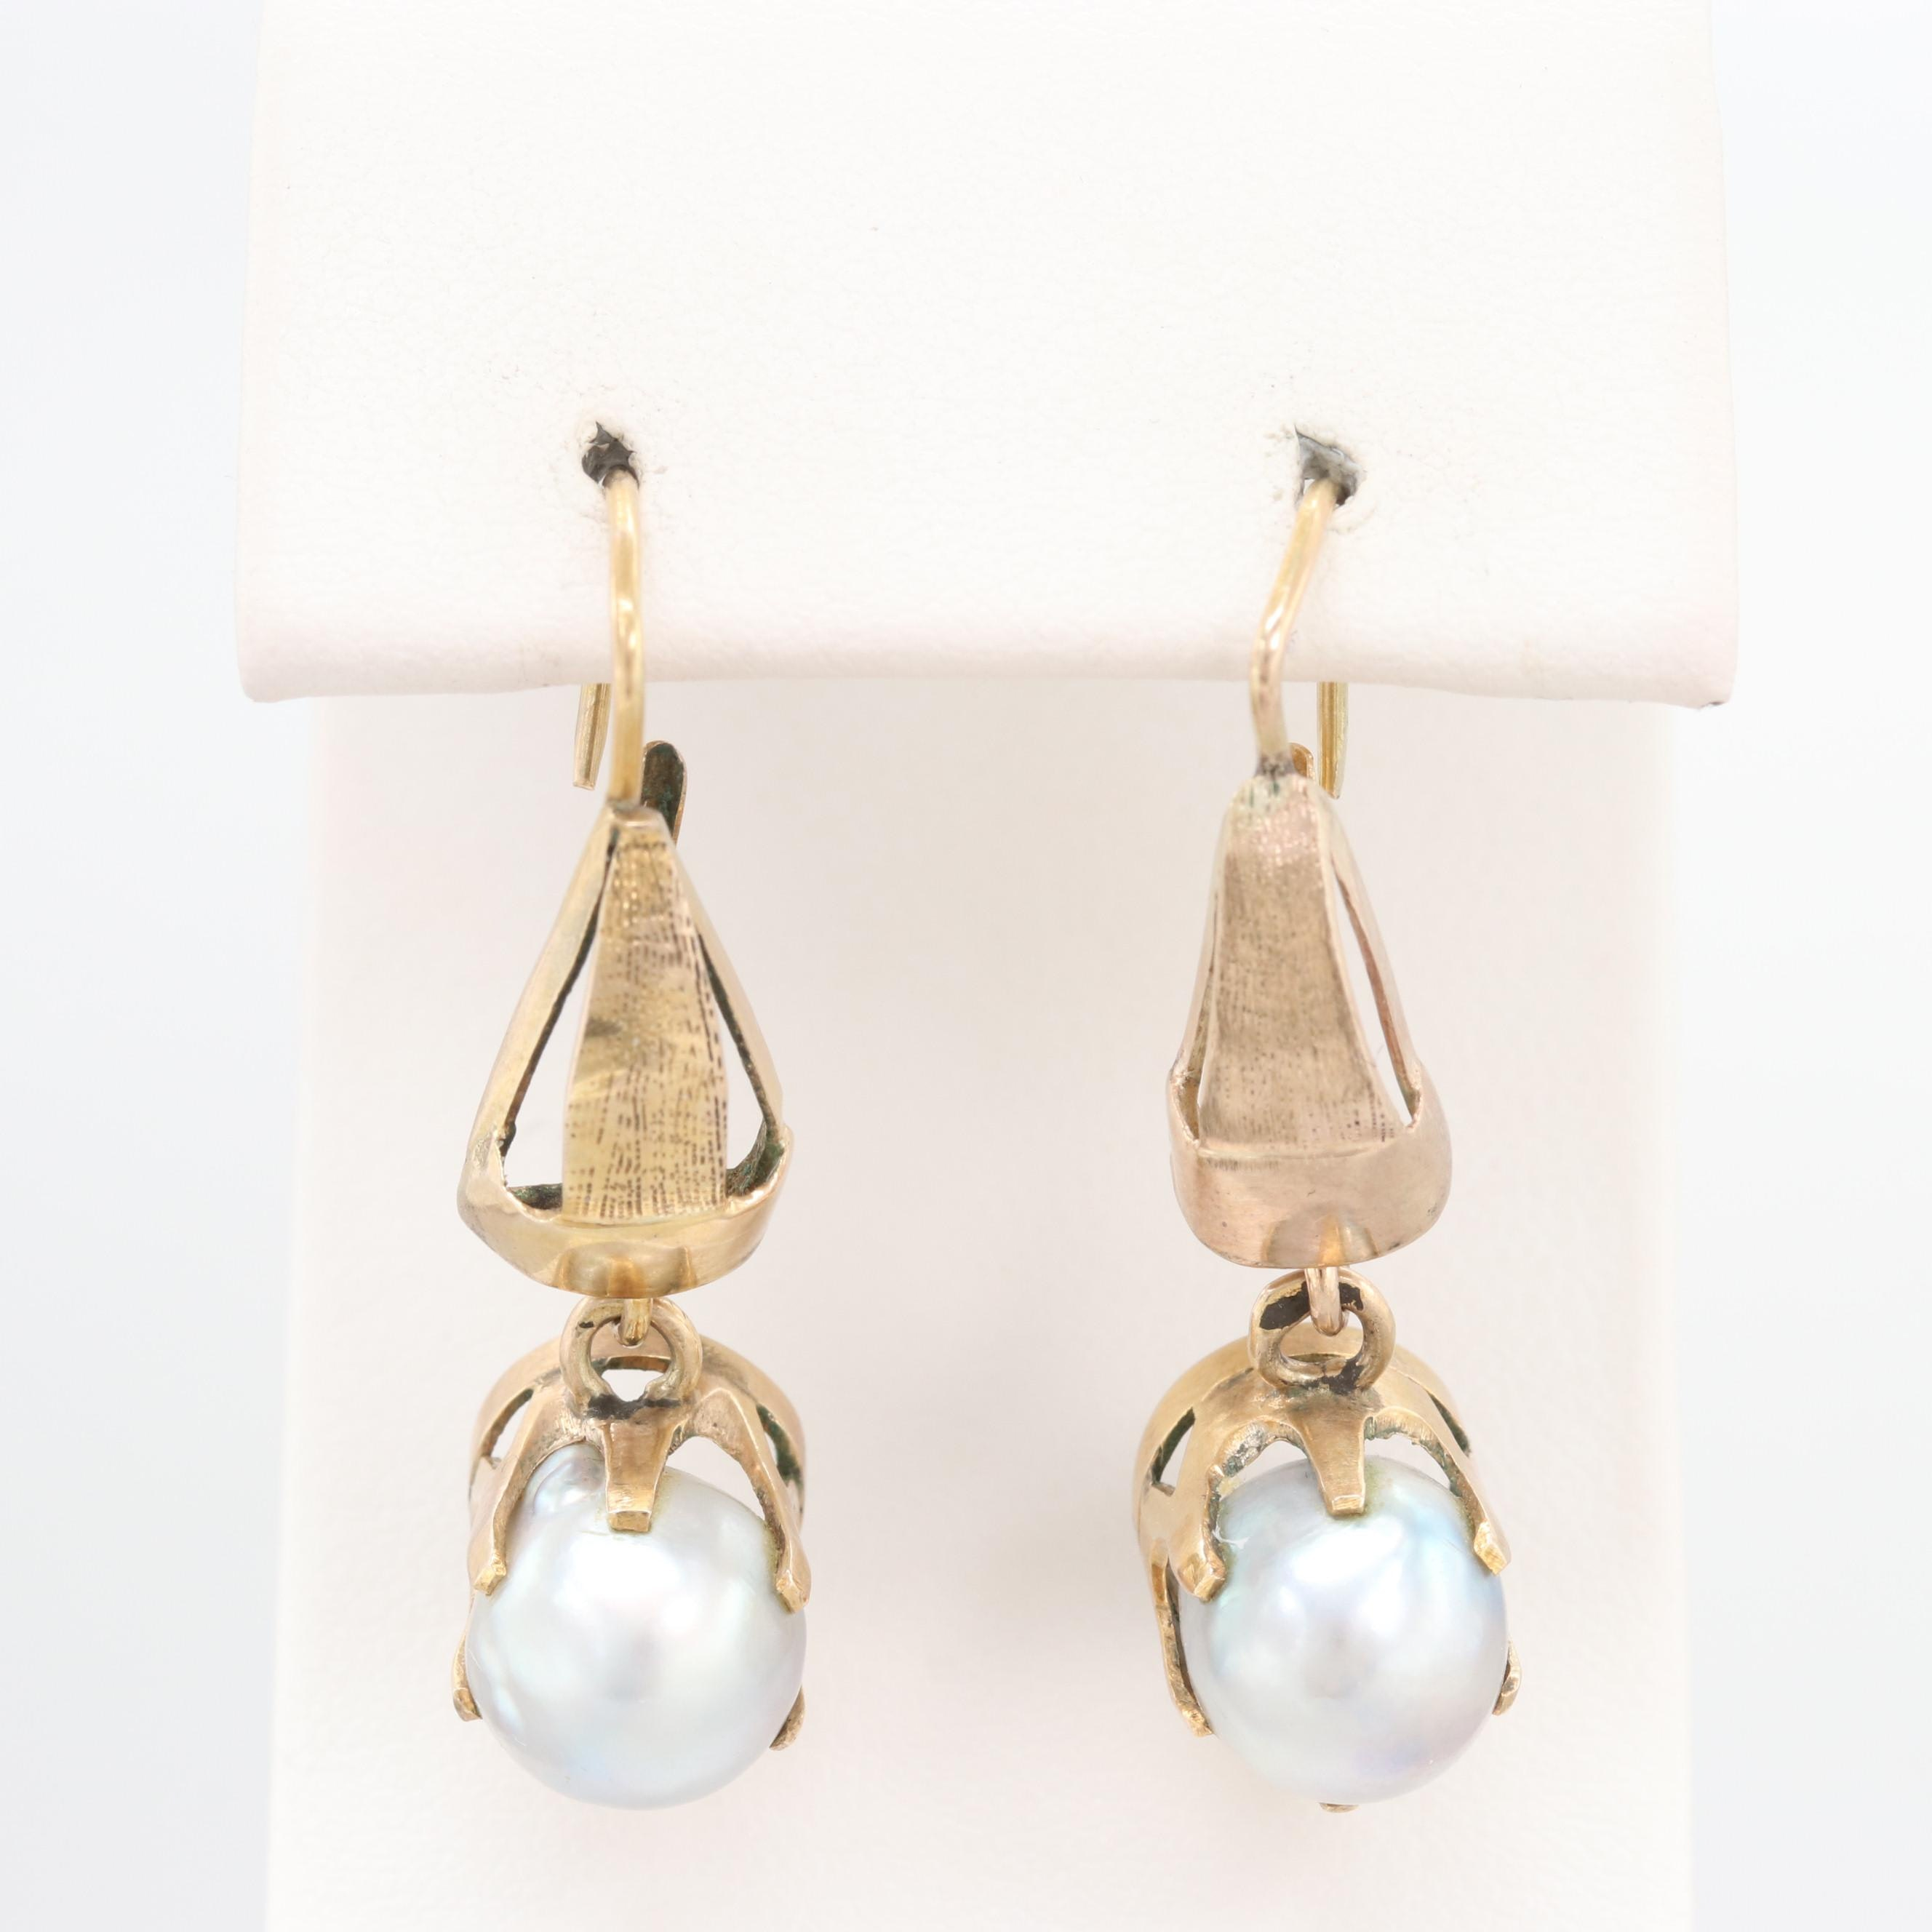 10K and 14K Yellow Gold Cultured Pearl Earrings